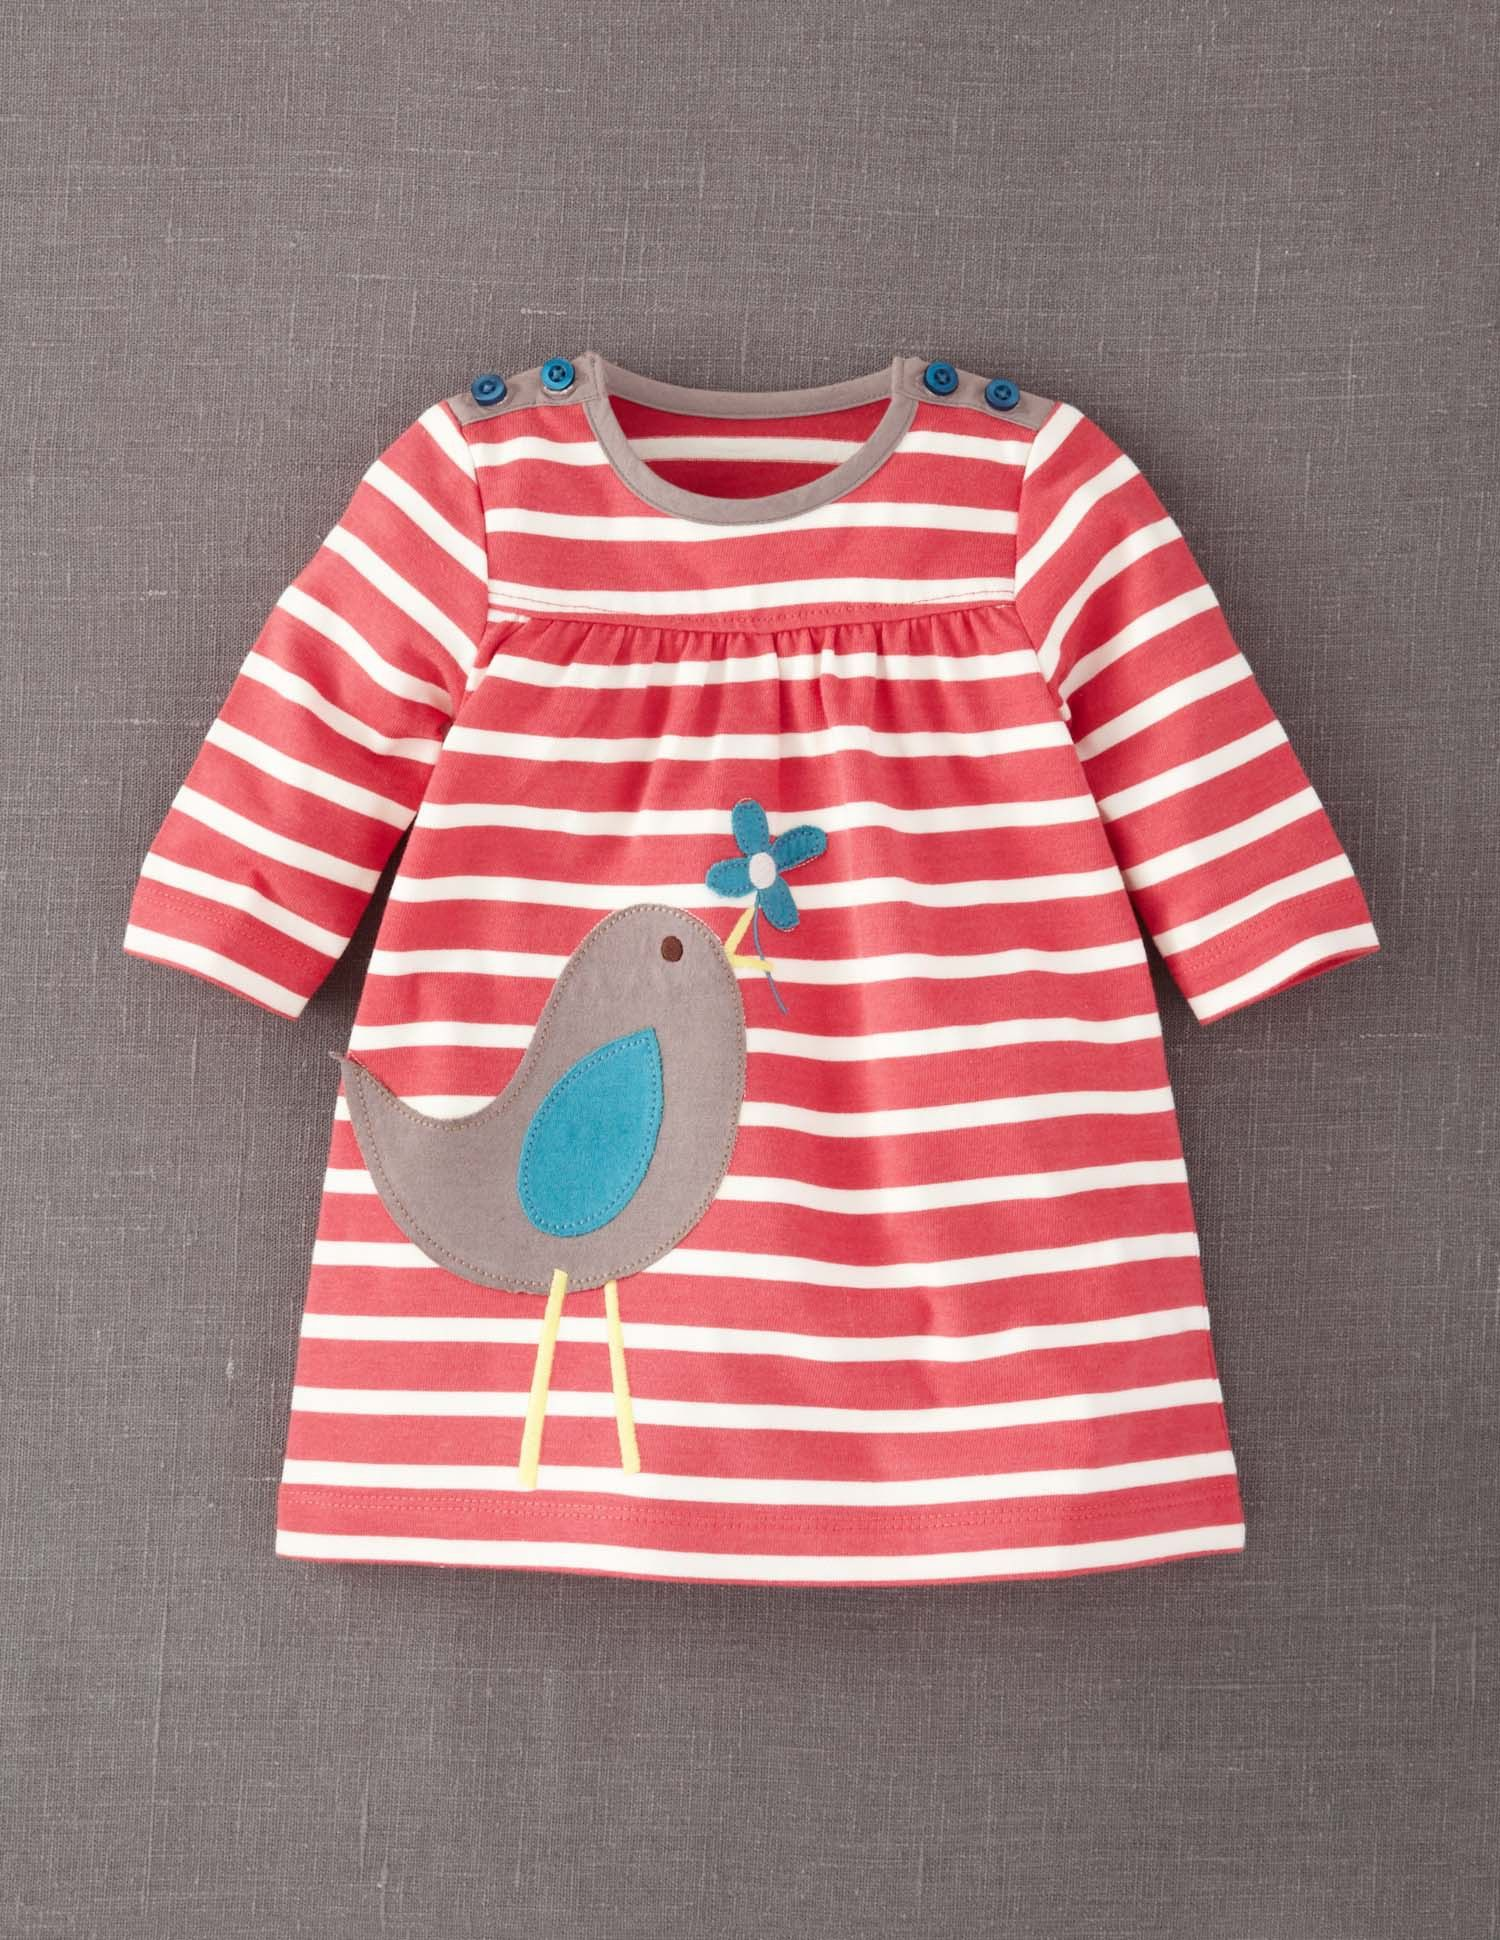 Applique Jersey Dress Kids Outfits Toddler Outfits Baby Girl Clothes